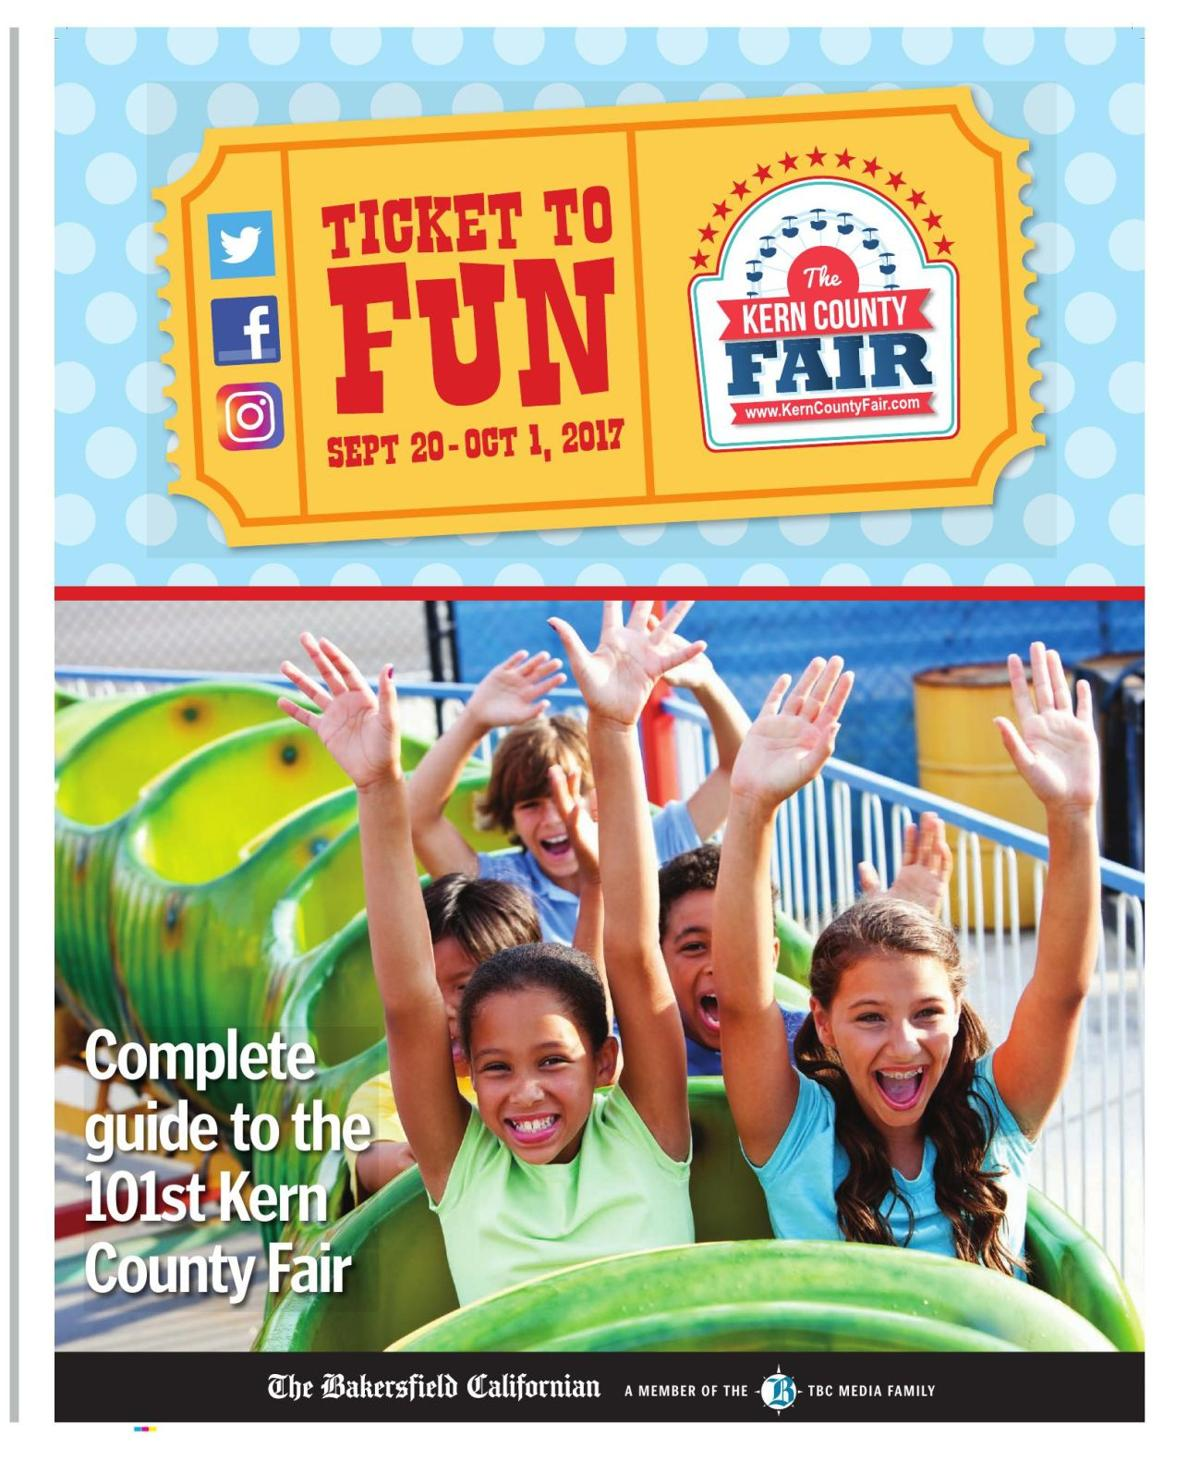 'Ticket to Fun' - Complete guide to the 101st Kern County Fair